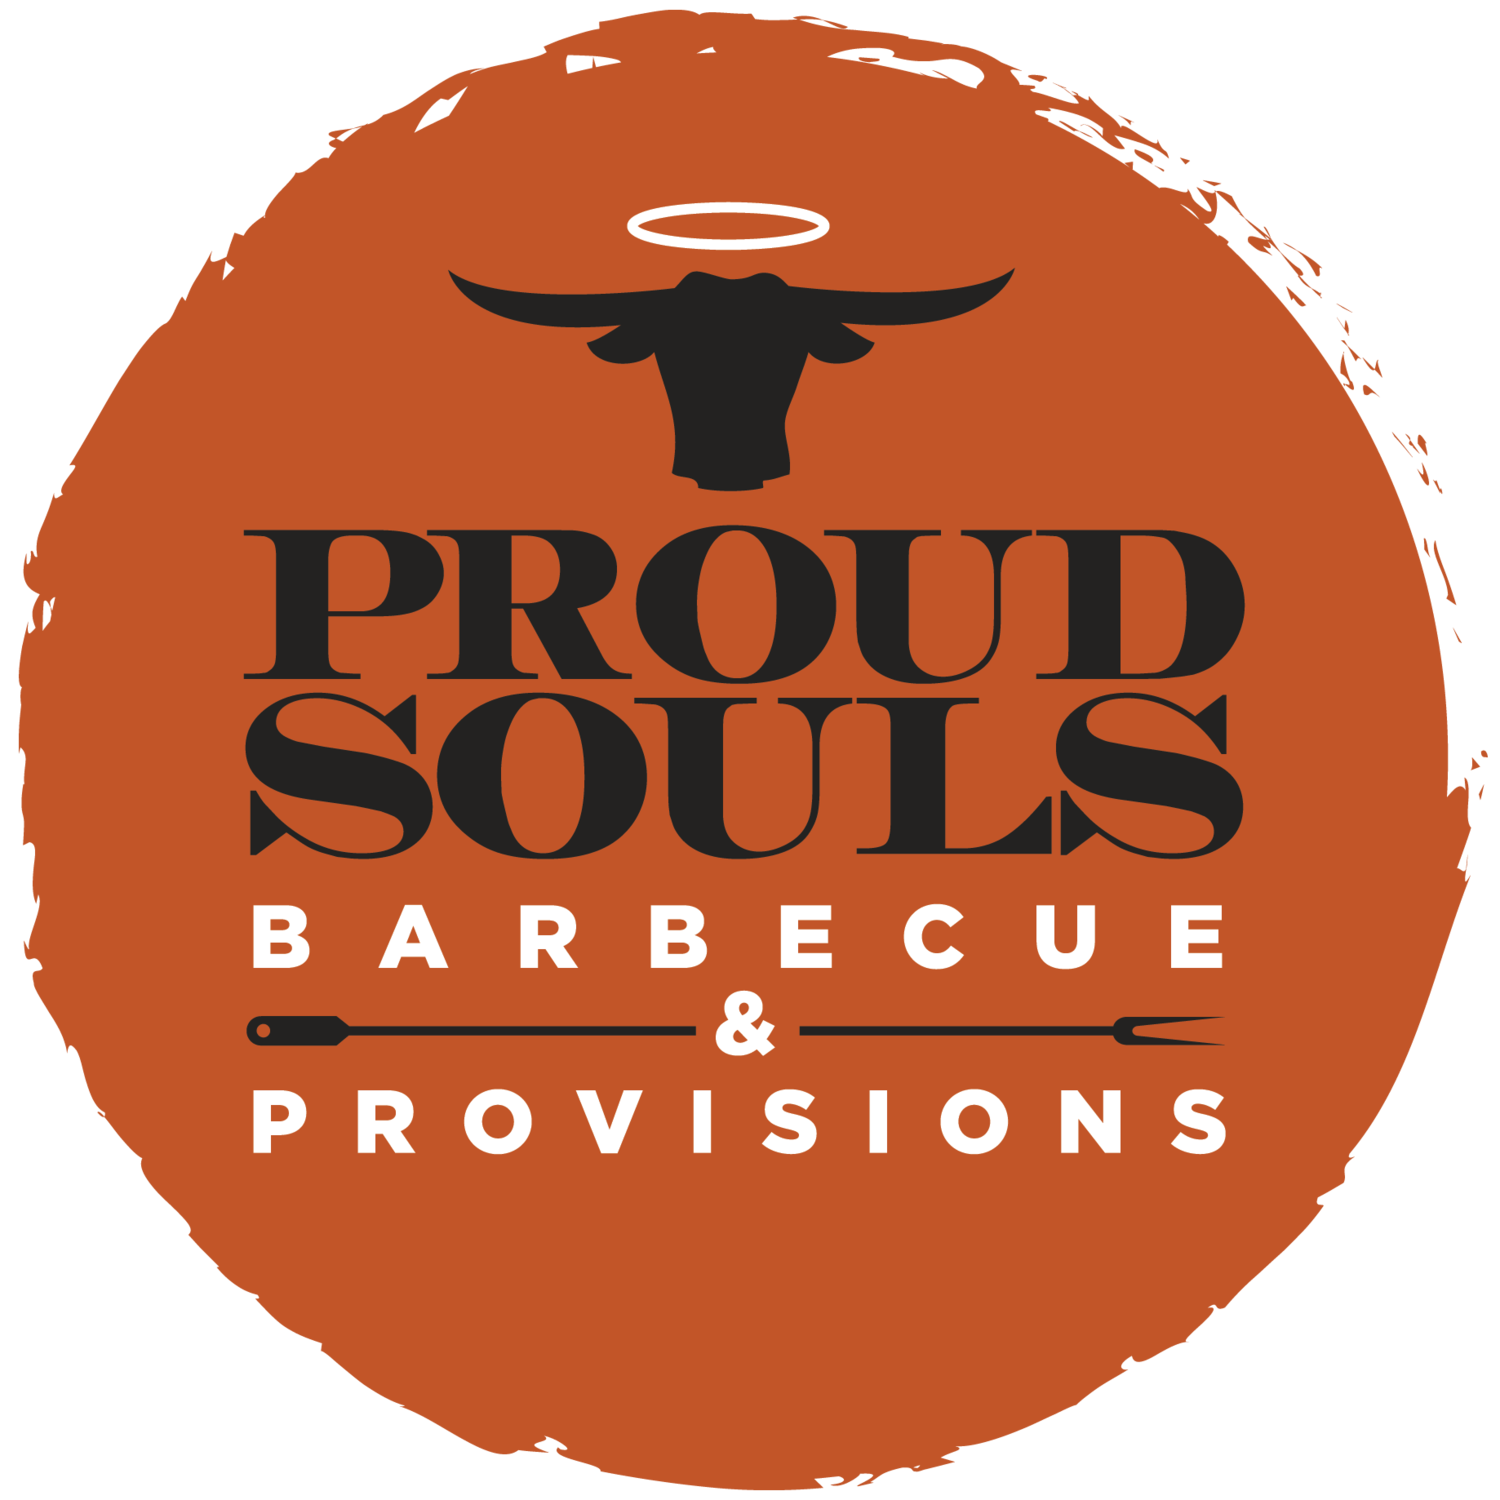 Proud Souls BBQ & Provisions